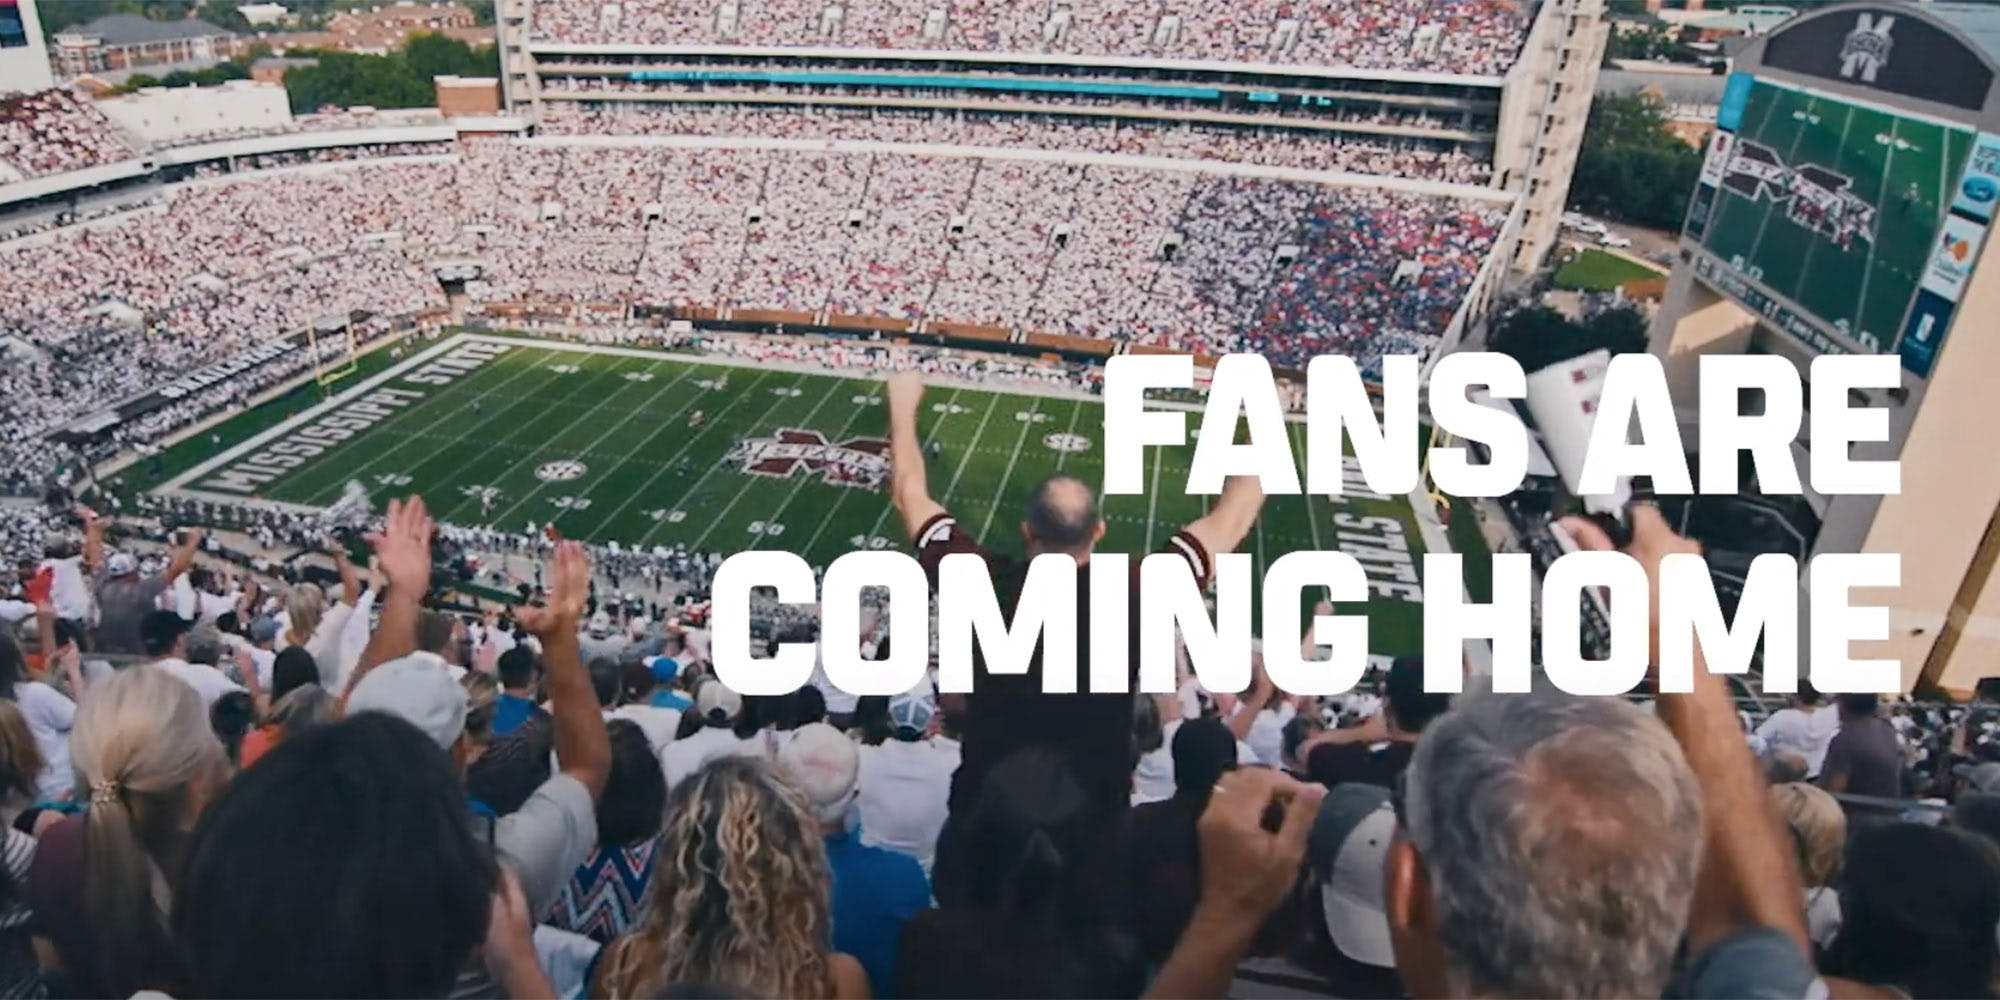 """espn college football poster showing fans cheering in a stadium with the words """"Fans are coming home"""""""